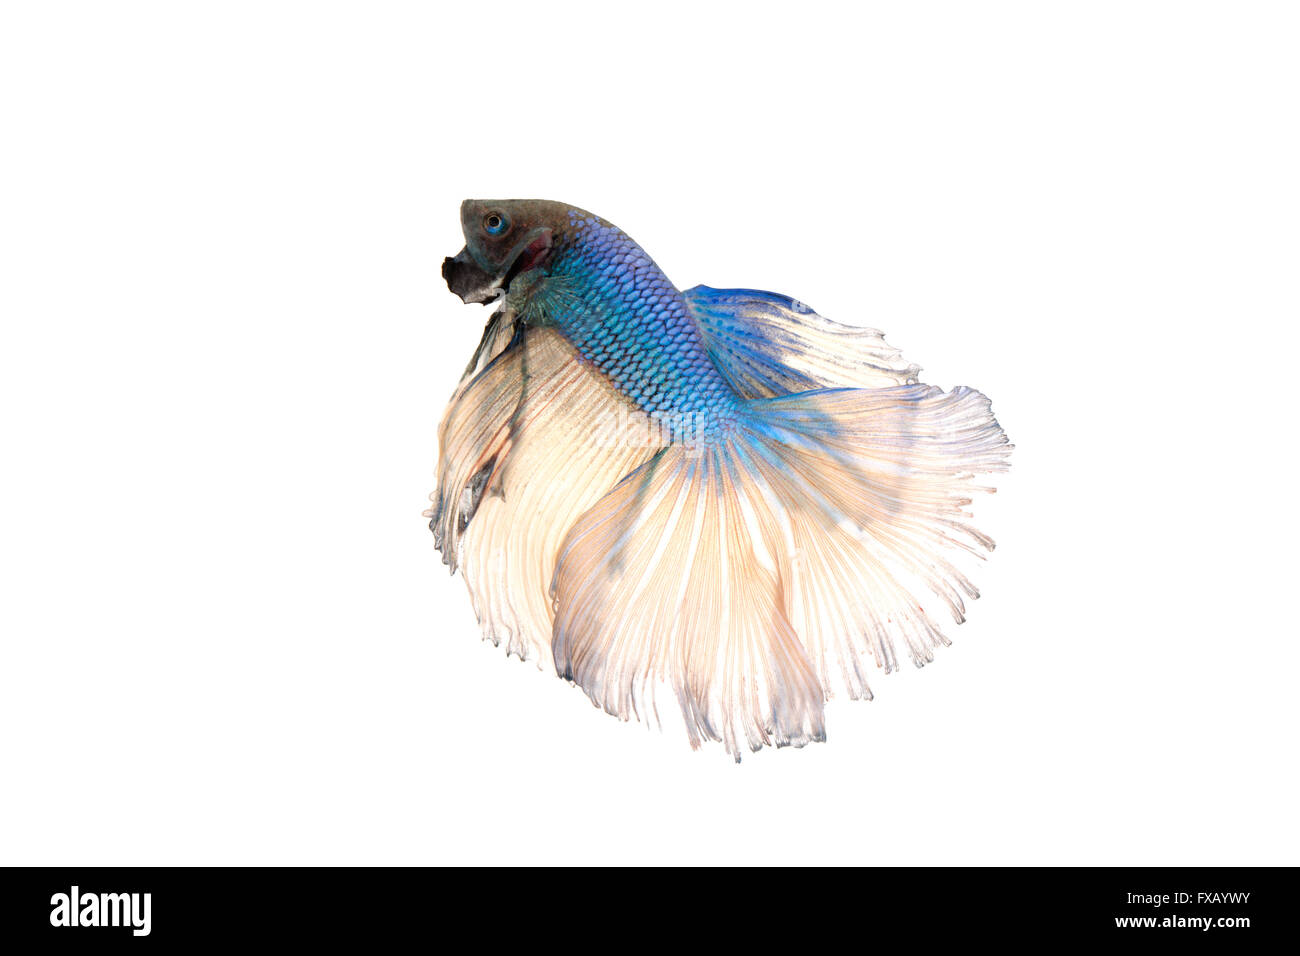 betta splendens or siamese fighting fish isolated on white background - Stock Image